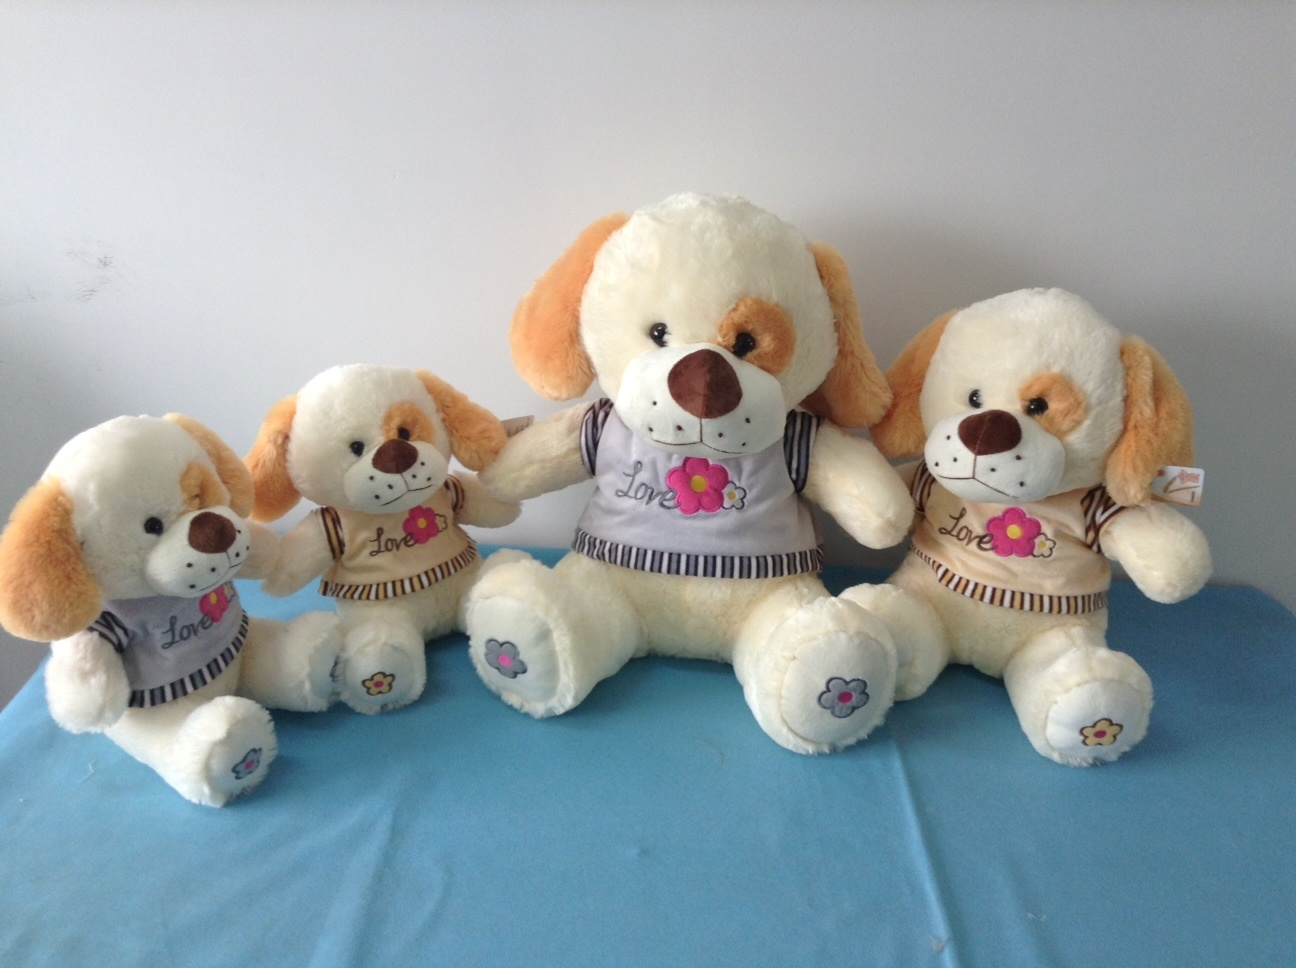 Plush and Stuffed Bear Toy for Gift